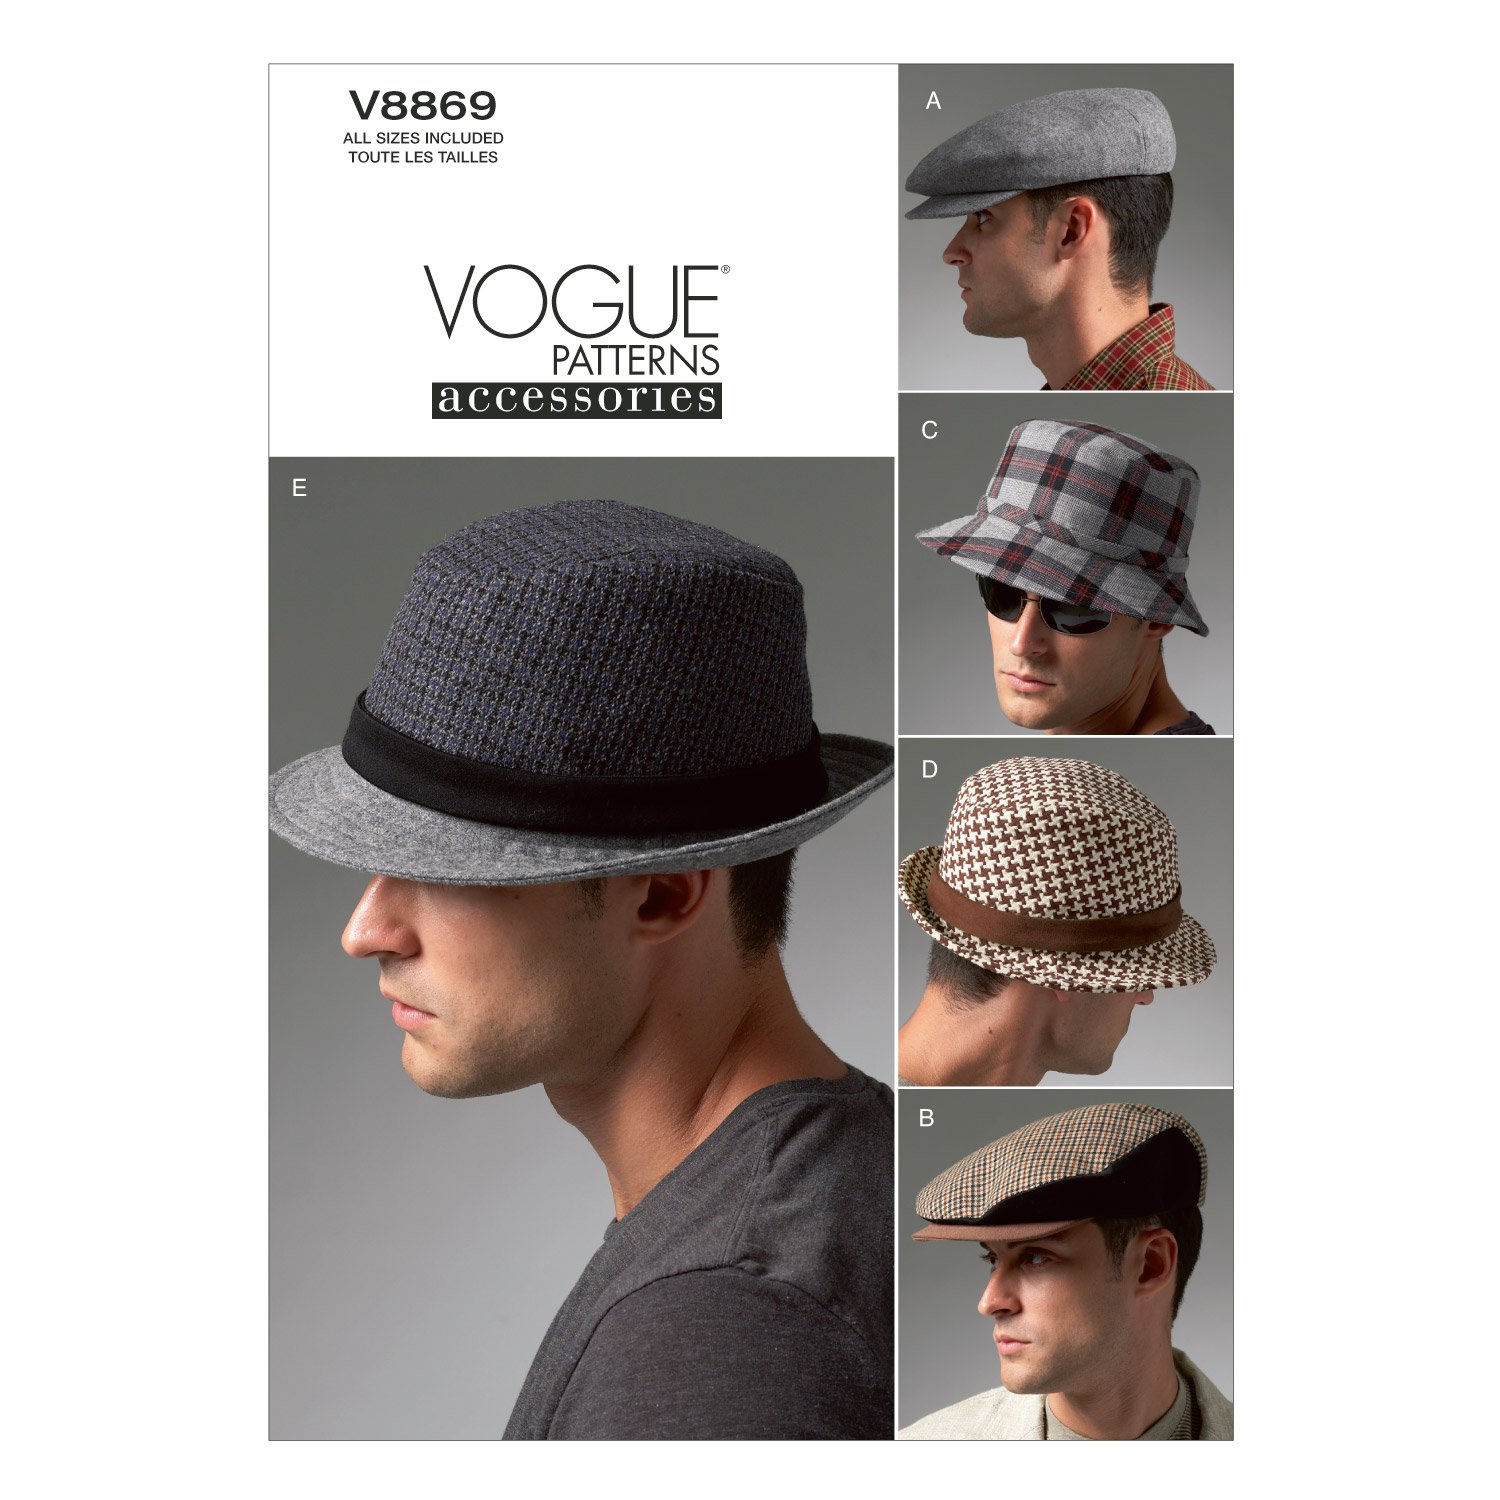 Amazon.com: Vogue Patterns V8869 Men\'s Hats Sewing Template, All ...